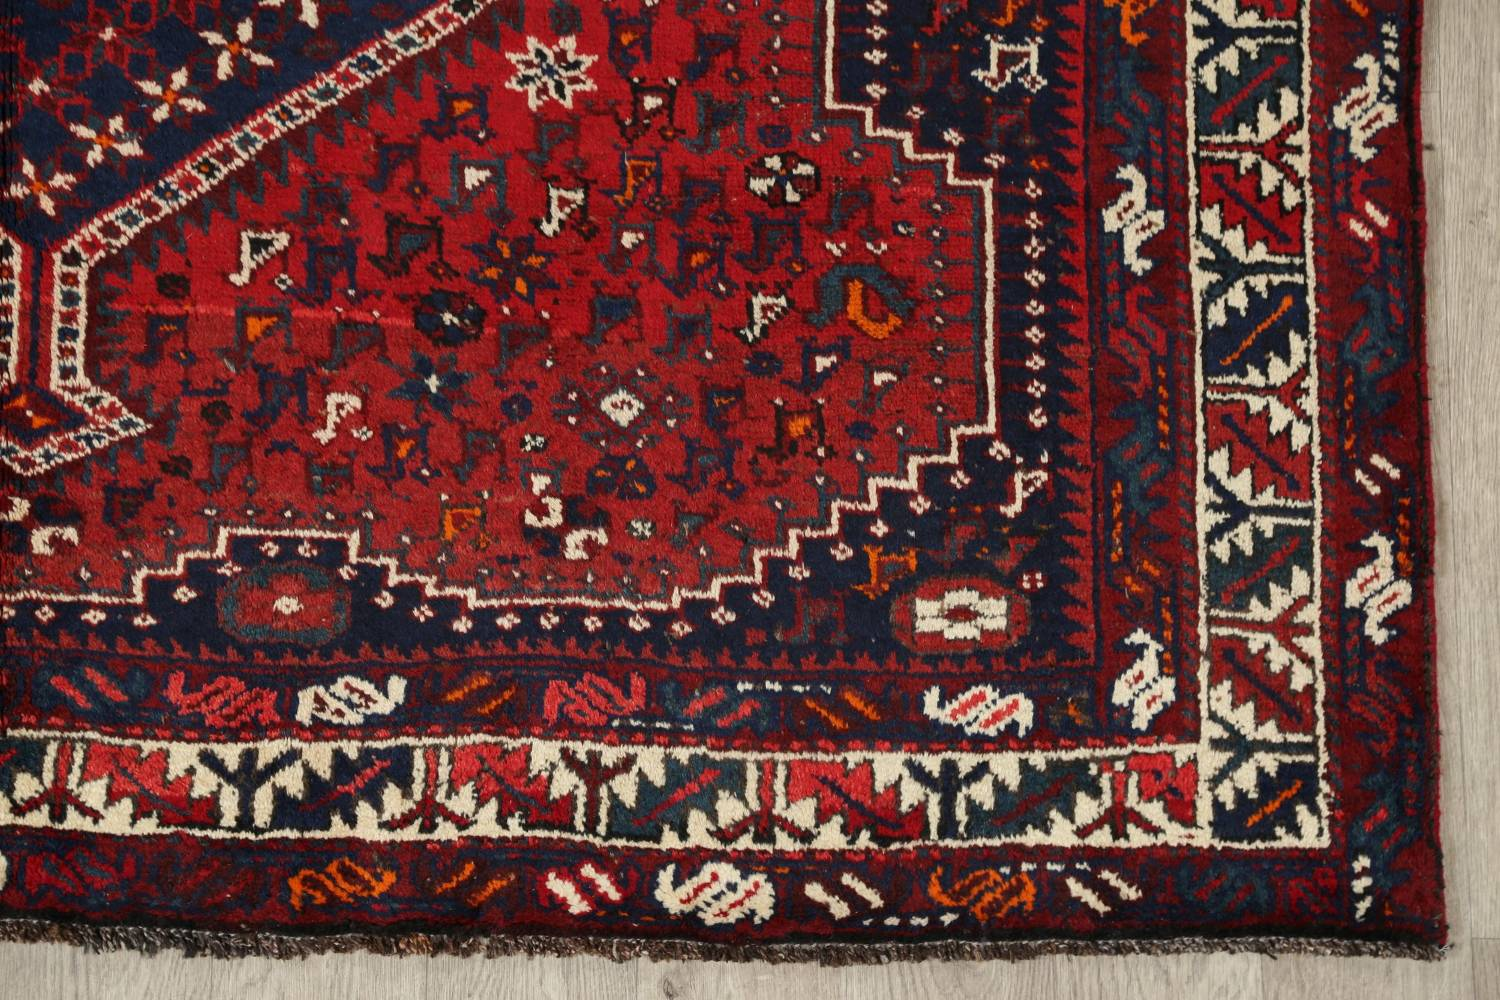 Antique Tribal Qashqai Persian Hand-Knotted 7x10 Wool Area Rug image 6